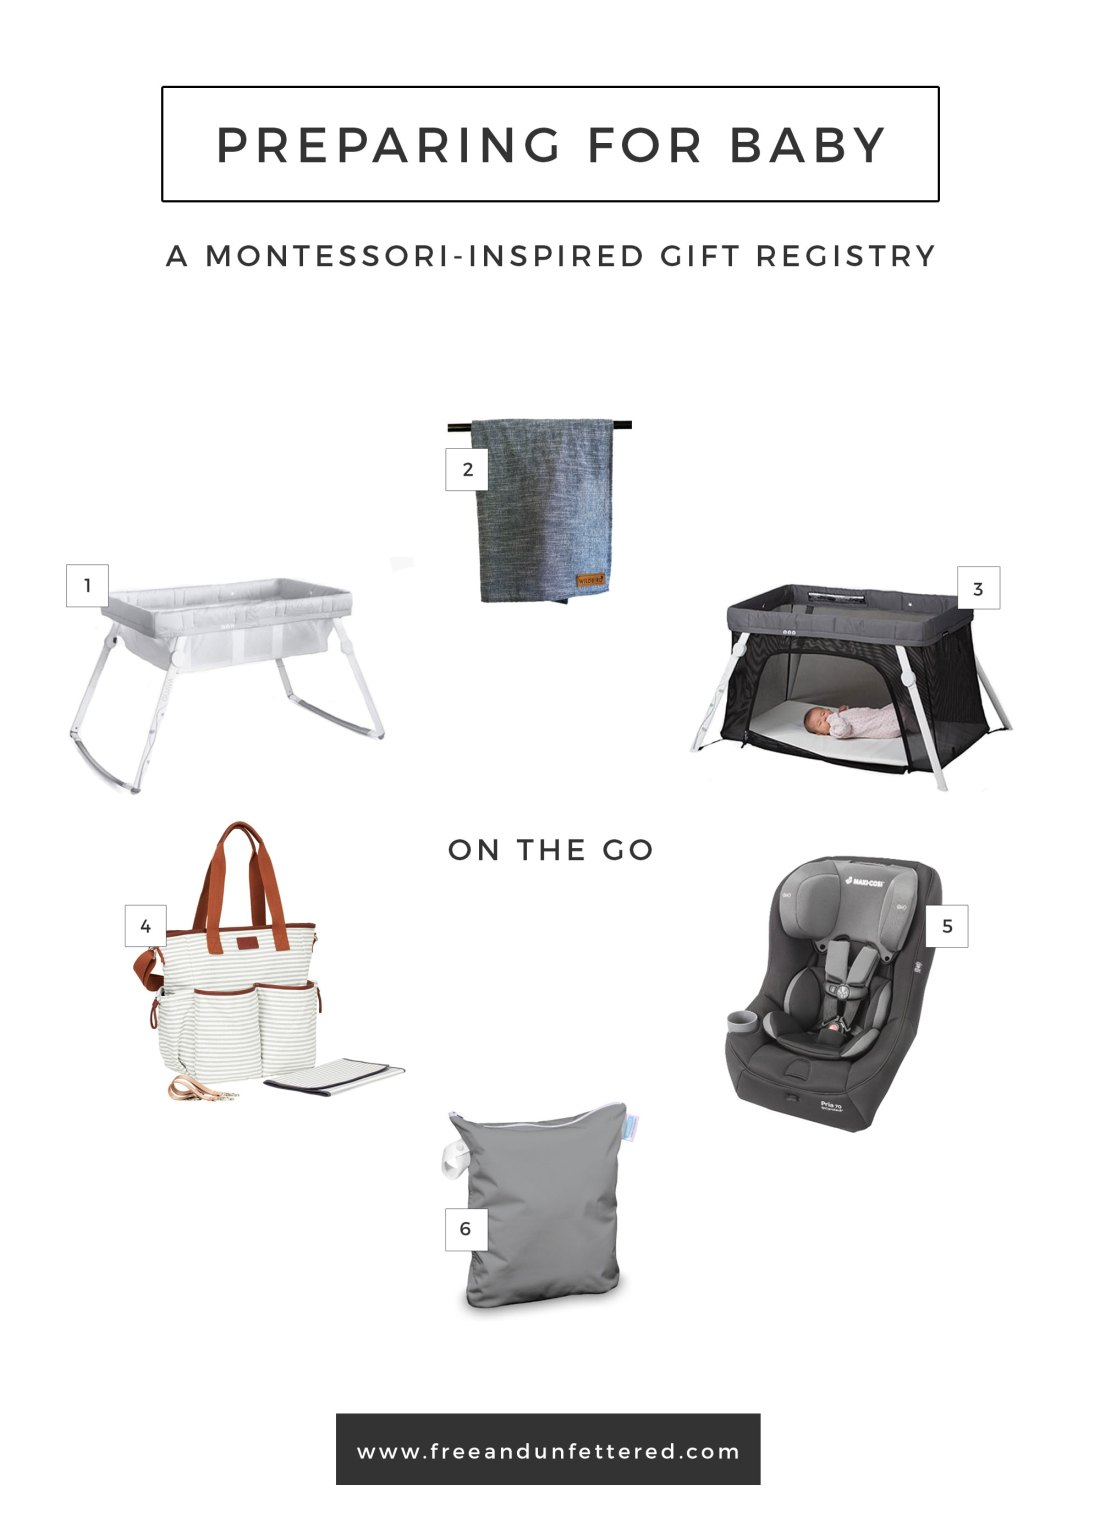 preparing-for-baby-on-the-go-gift-registry